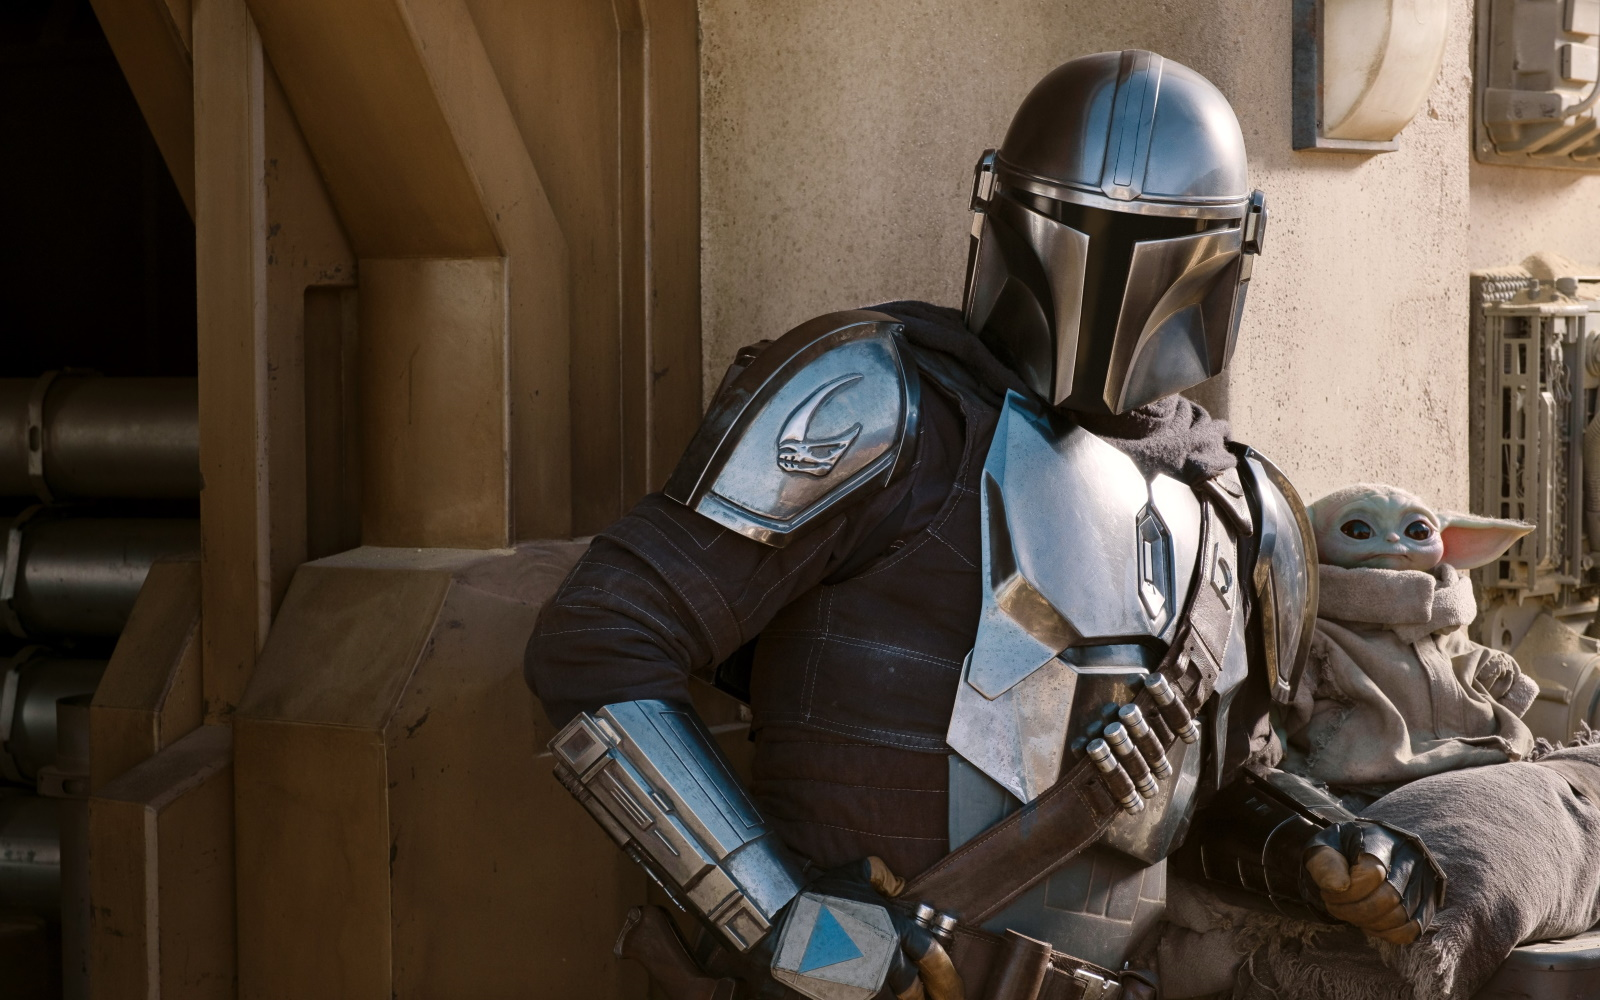 The Mandalorian Season 2 Trailer Drops, Along With New Promotional Photos & Info